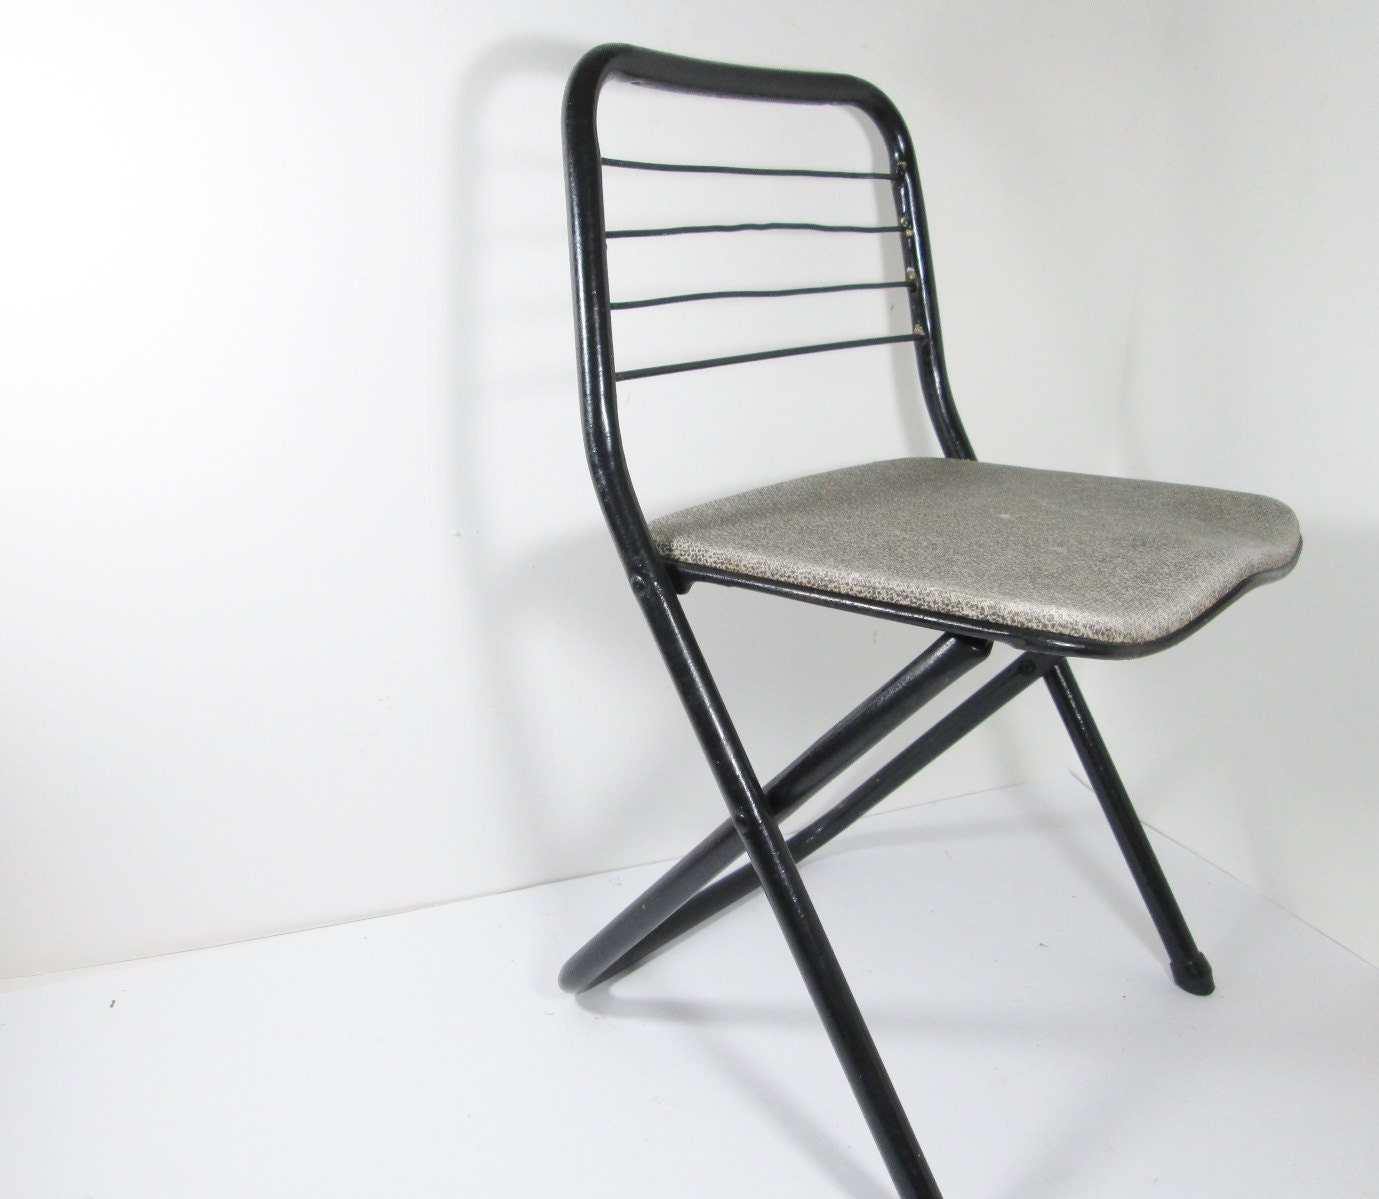 Vintage Childs Metal Folding Chair by Cosco by GirlPickers on Etsy